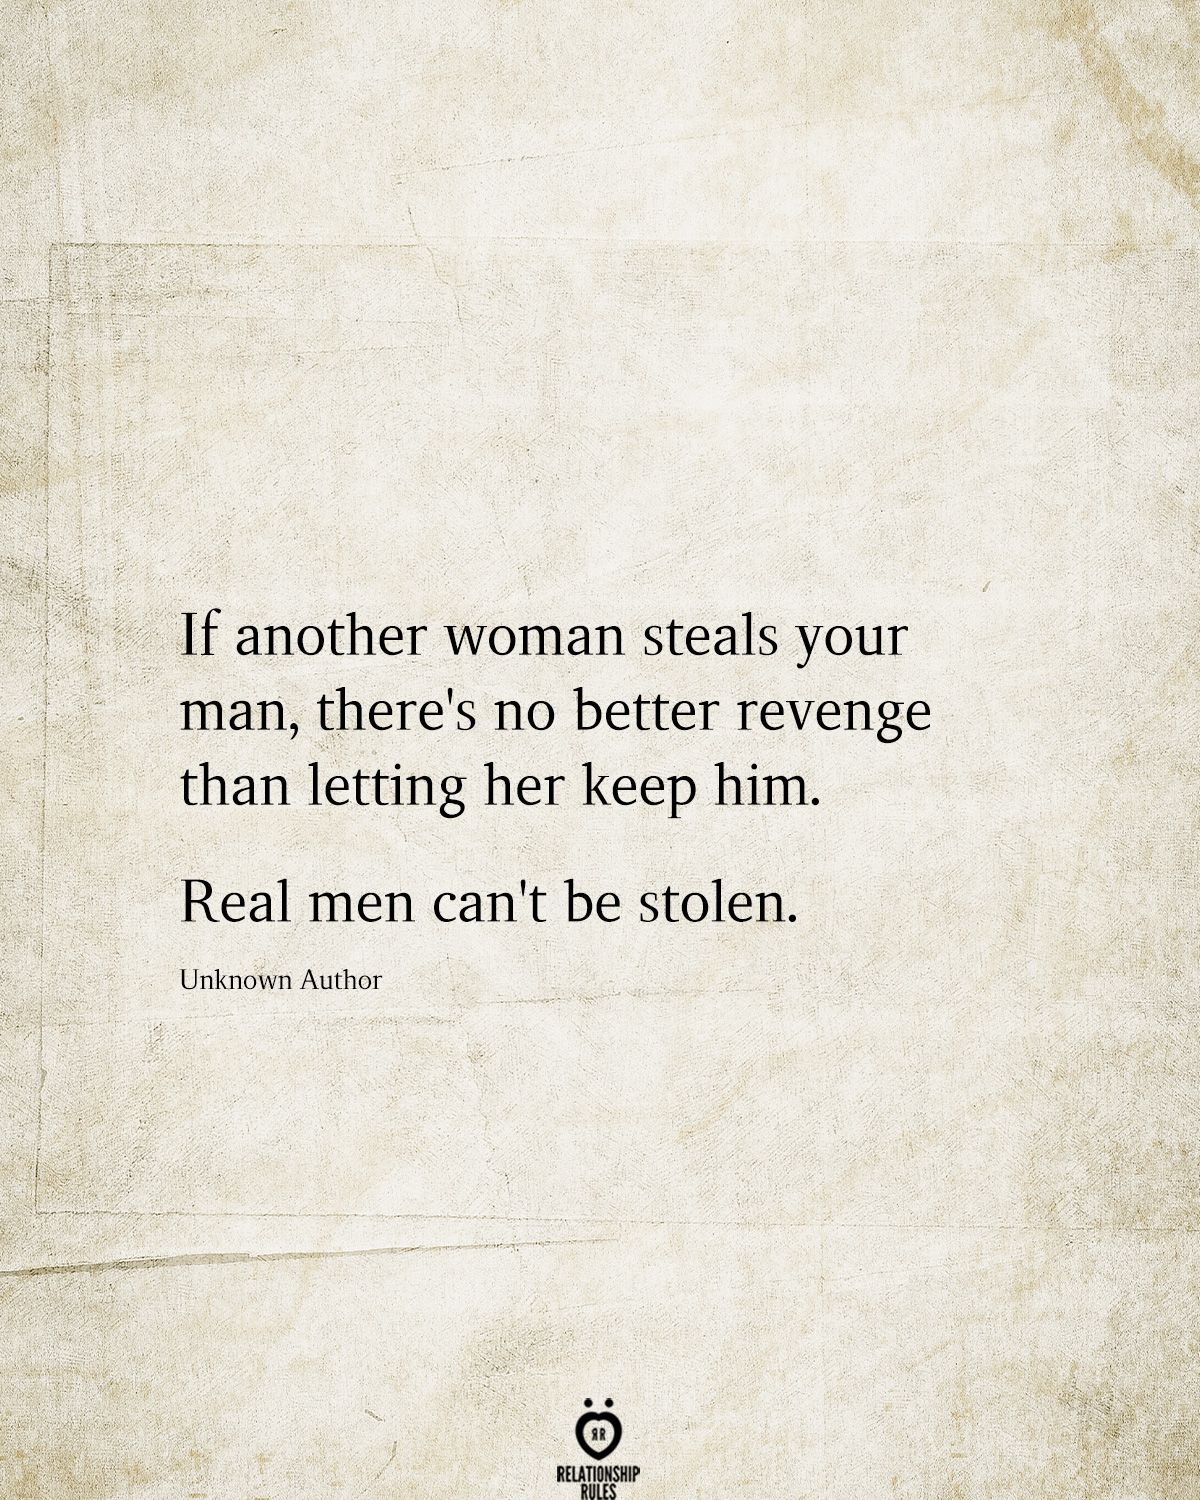 If Another Woman Steals Your Man, There's No Better Revenge Than Letting Her Keep Him